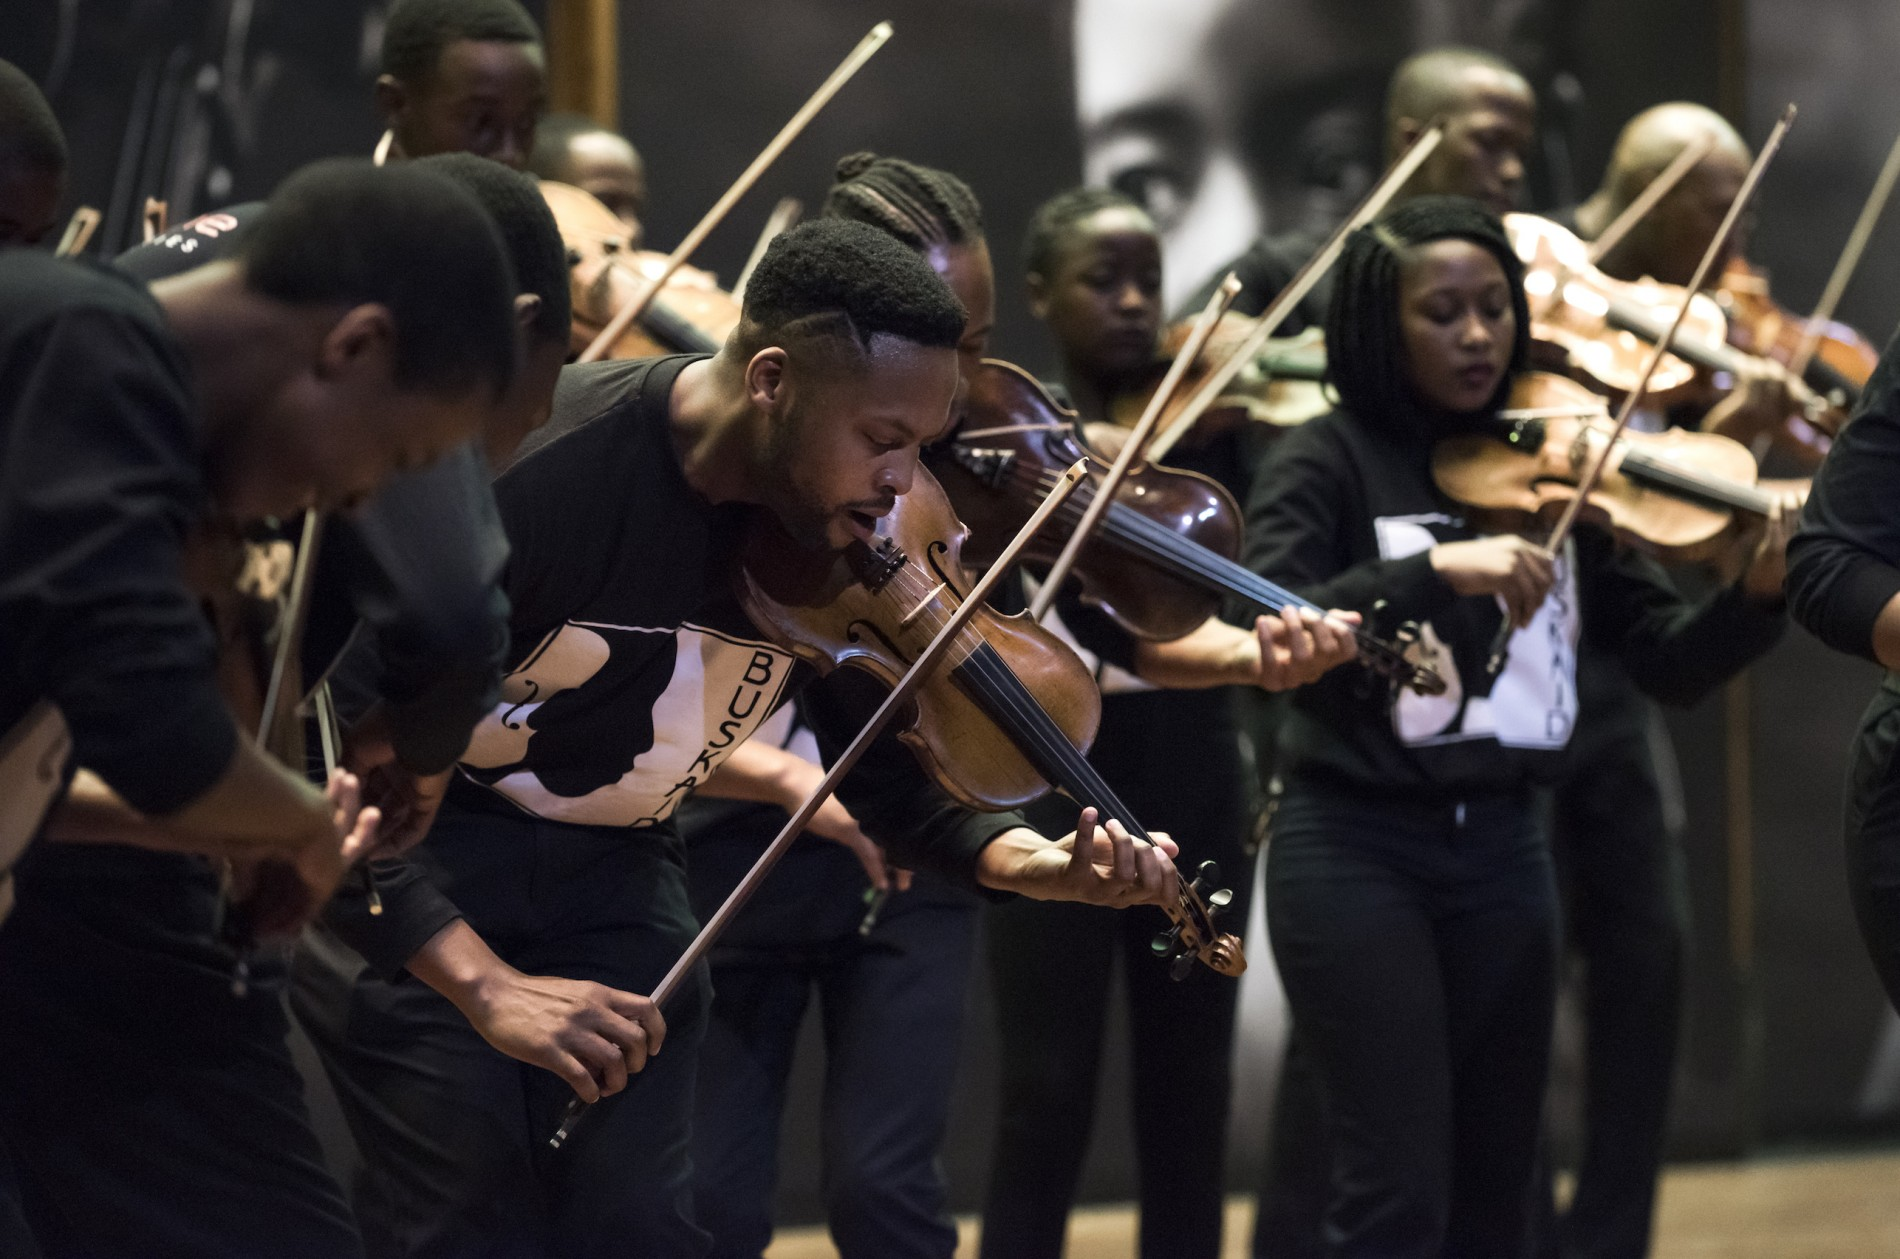 Buskaid Soweto String Ensemble violinists